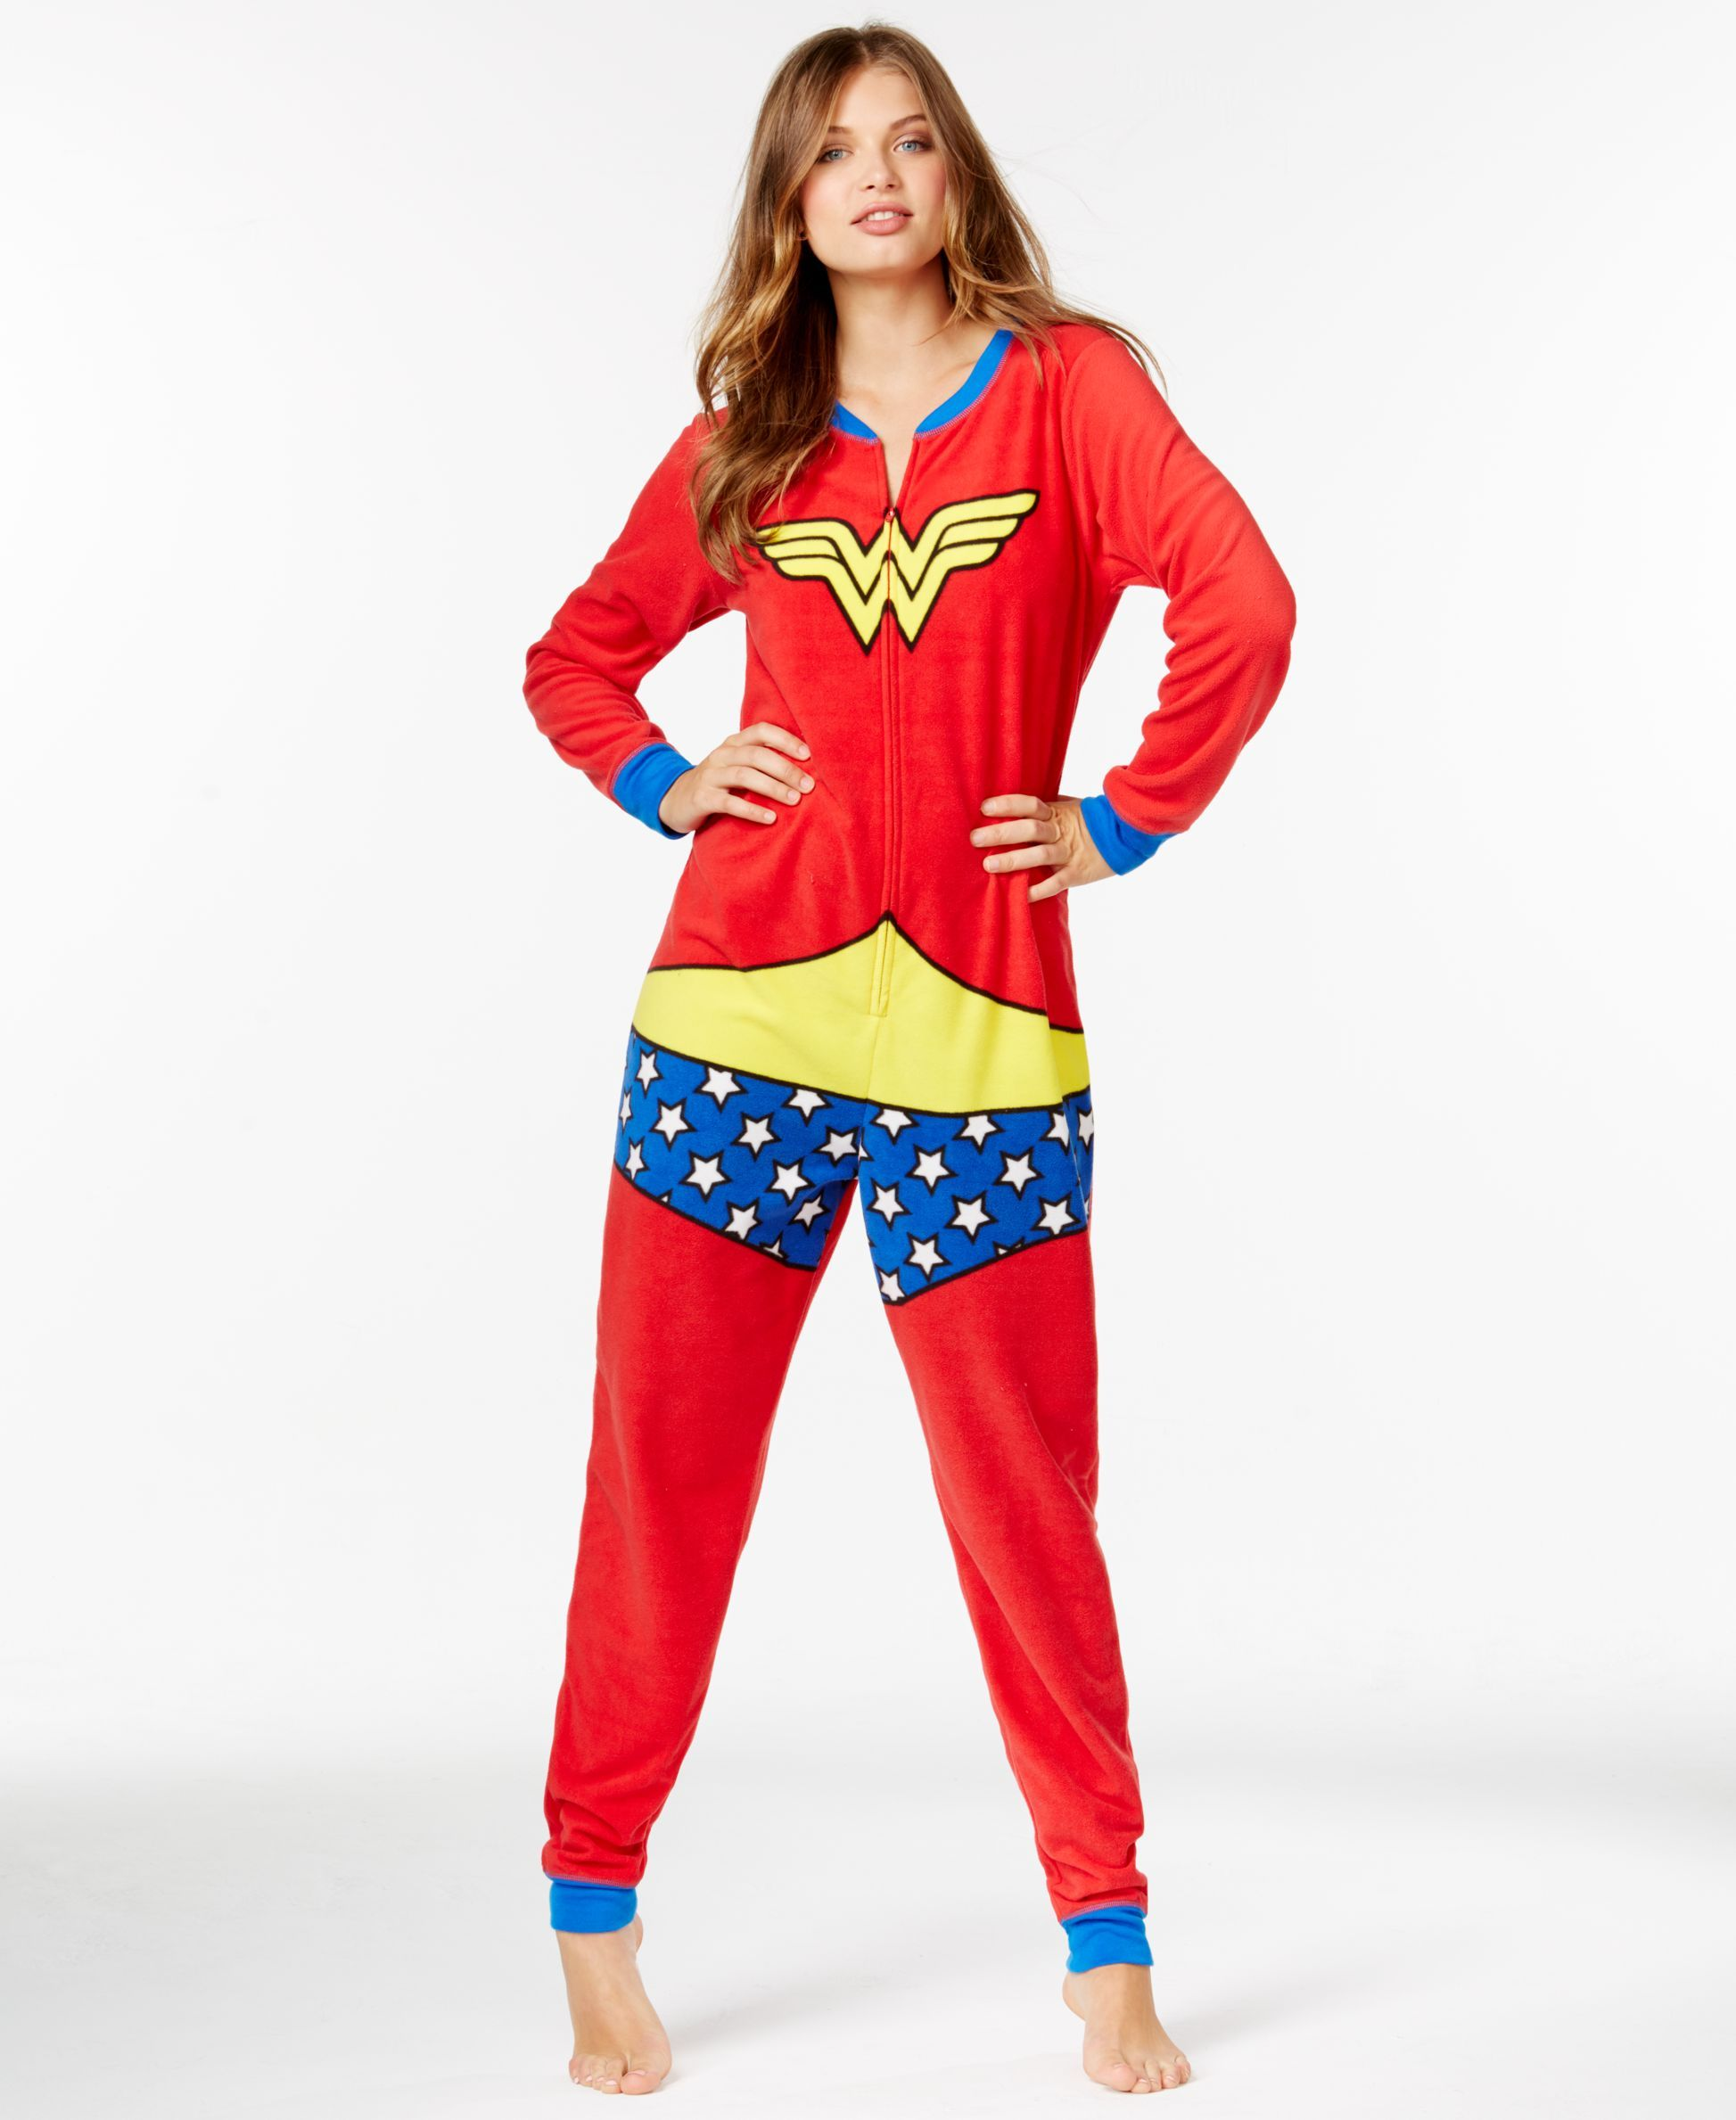 Wonder Woman Adult Onesie. Wonder Woman Adult Onesie Pj Onesies 5b894b6b6